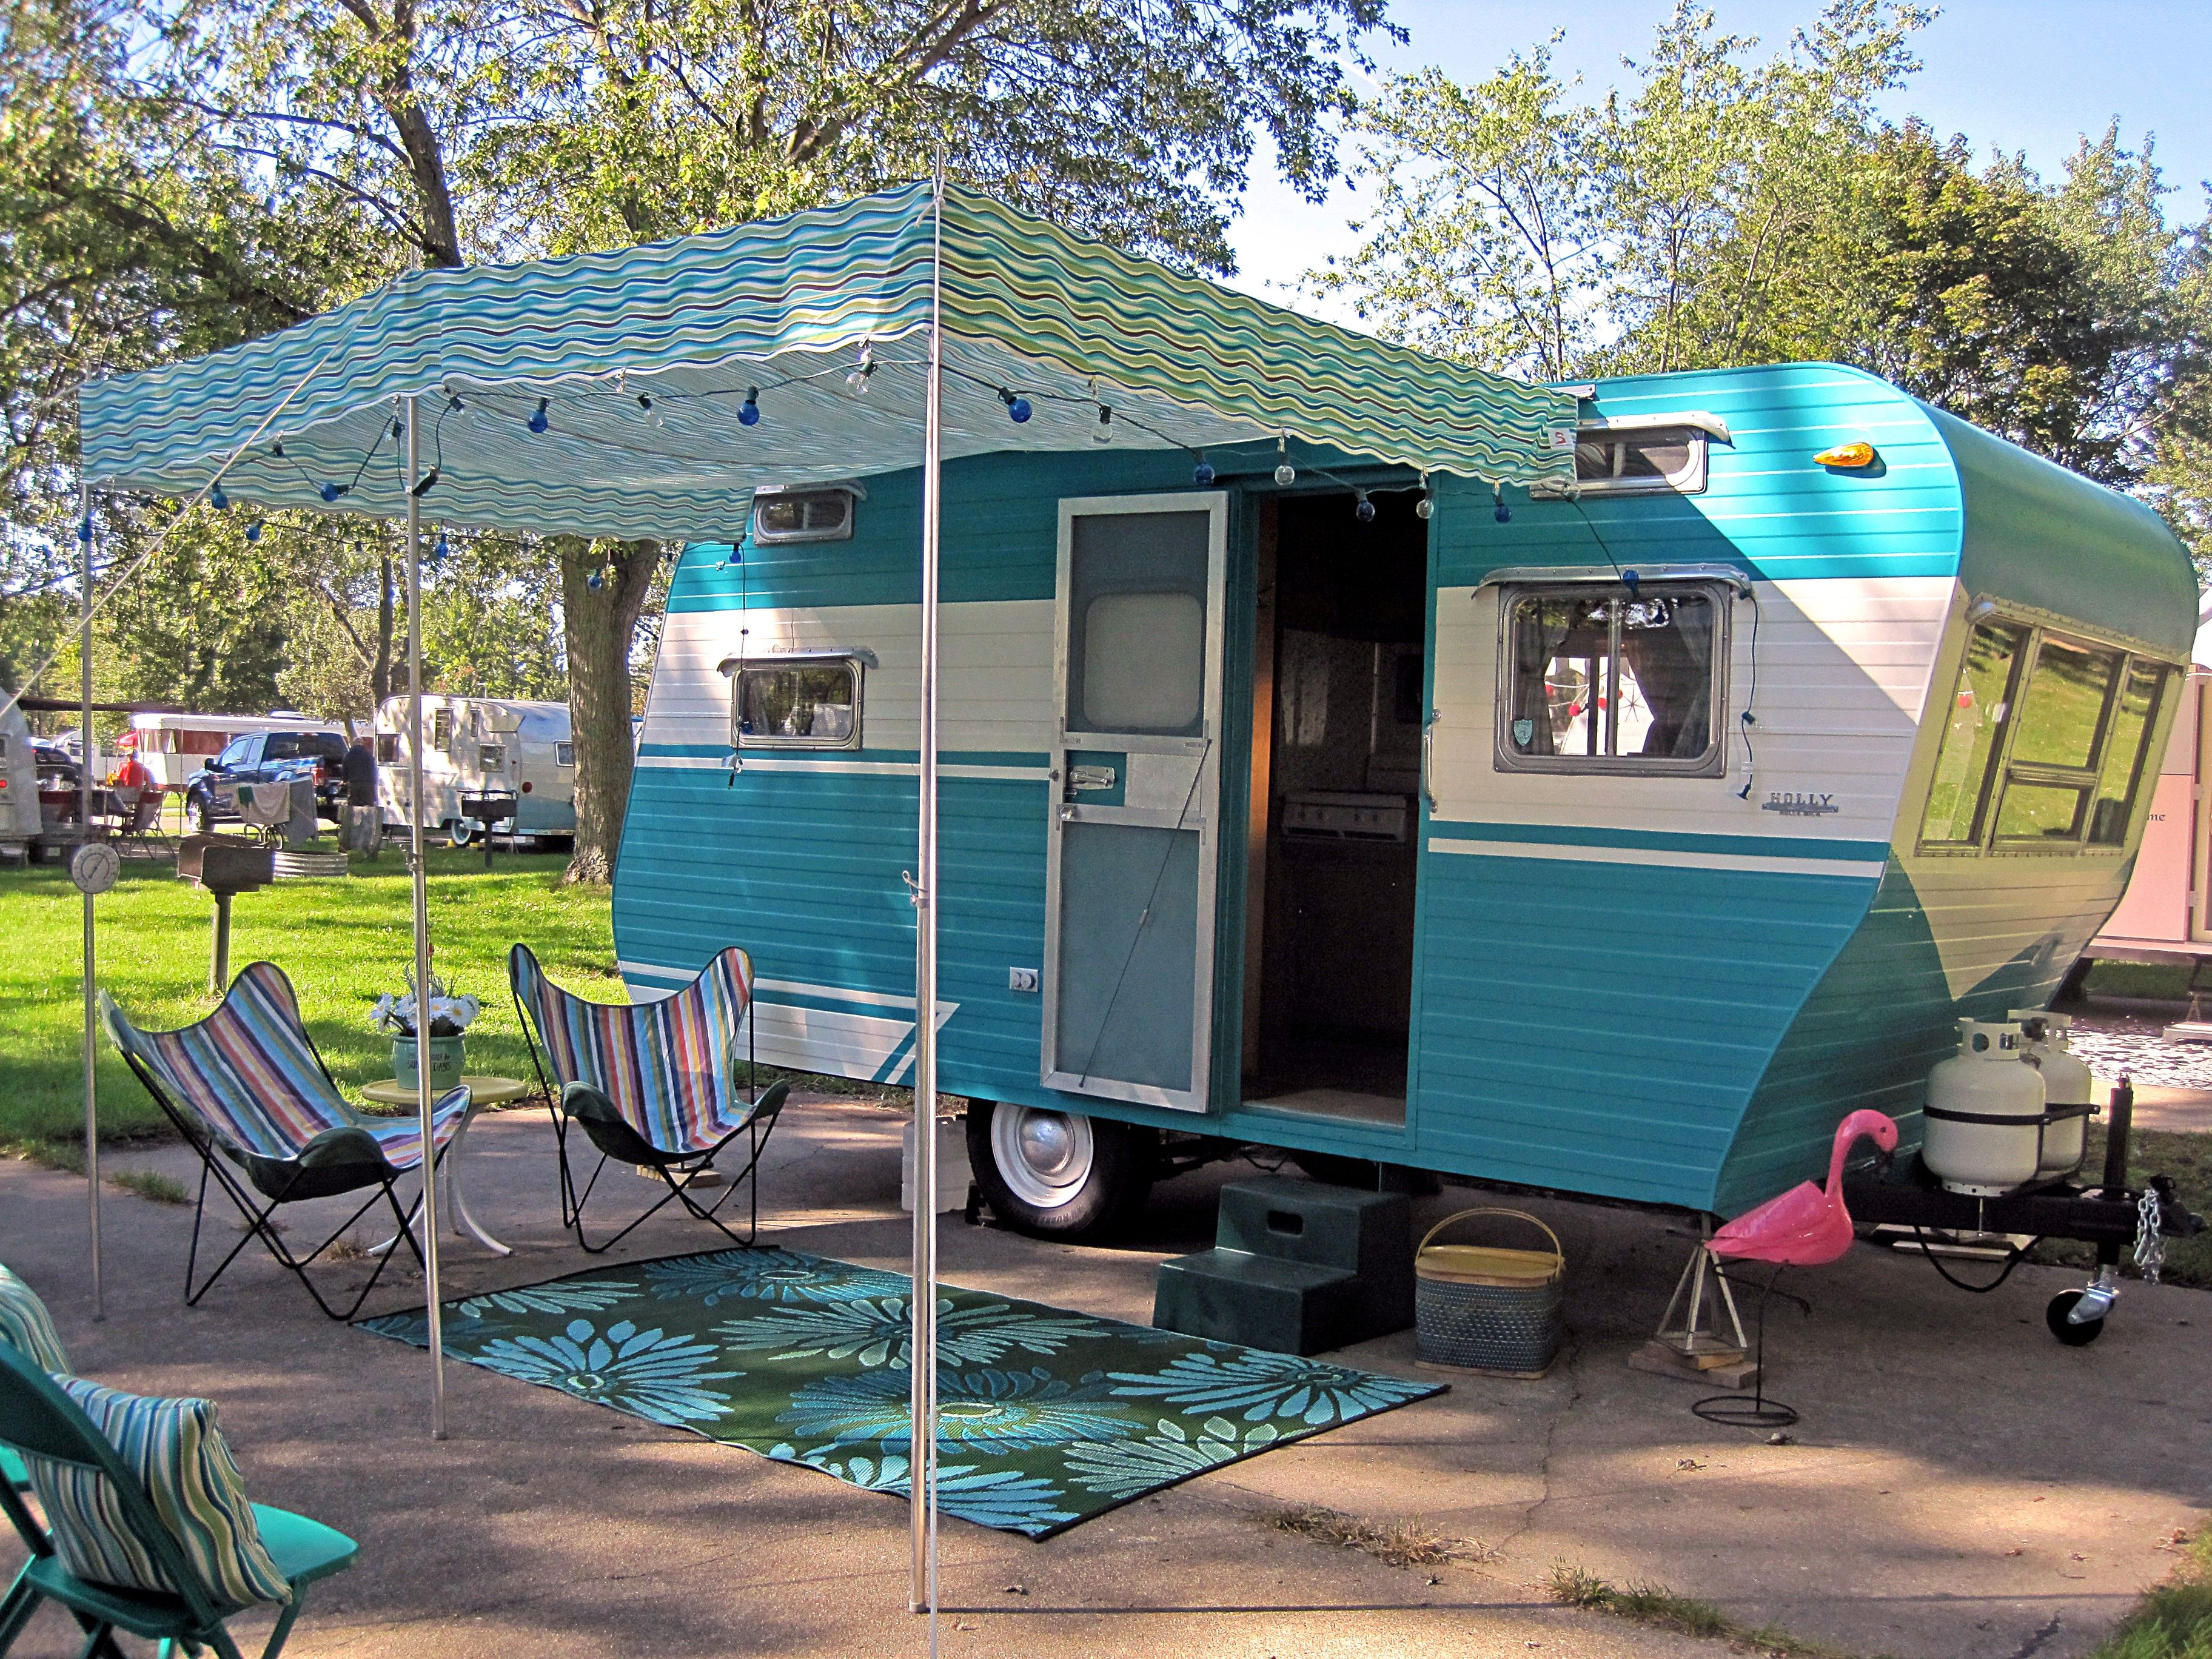 Pin By Julie Bennett On Pink Flamingo Awnings Vintage Camper Custom Awnings Vintage Campers Trailers